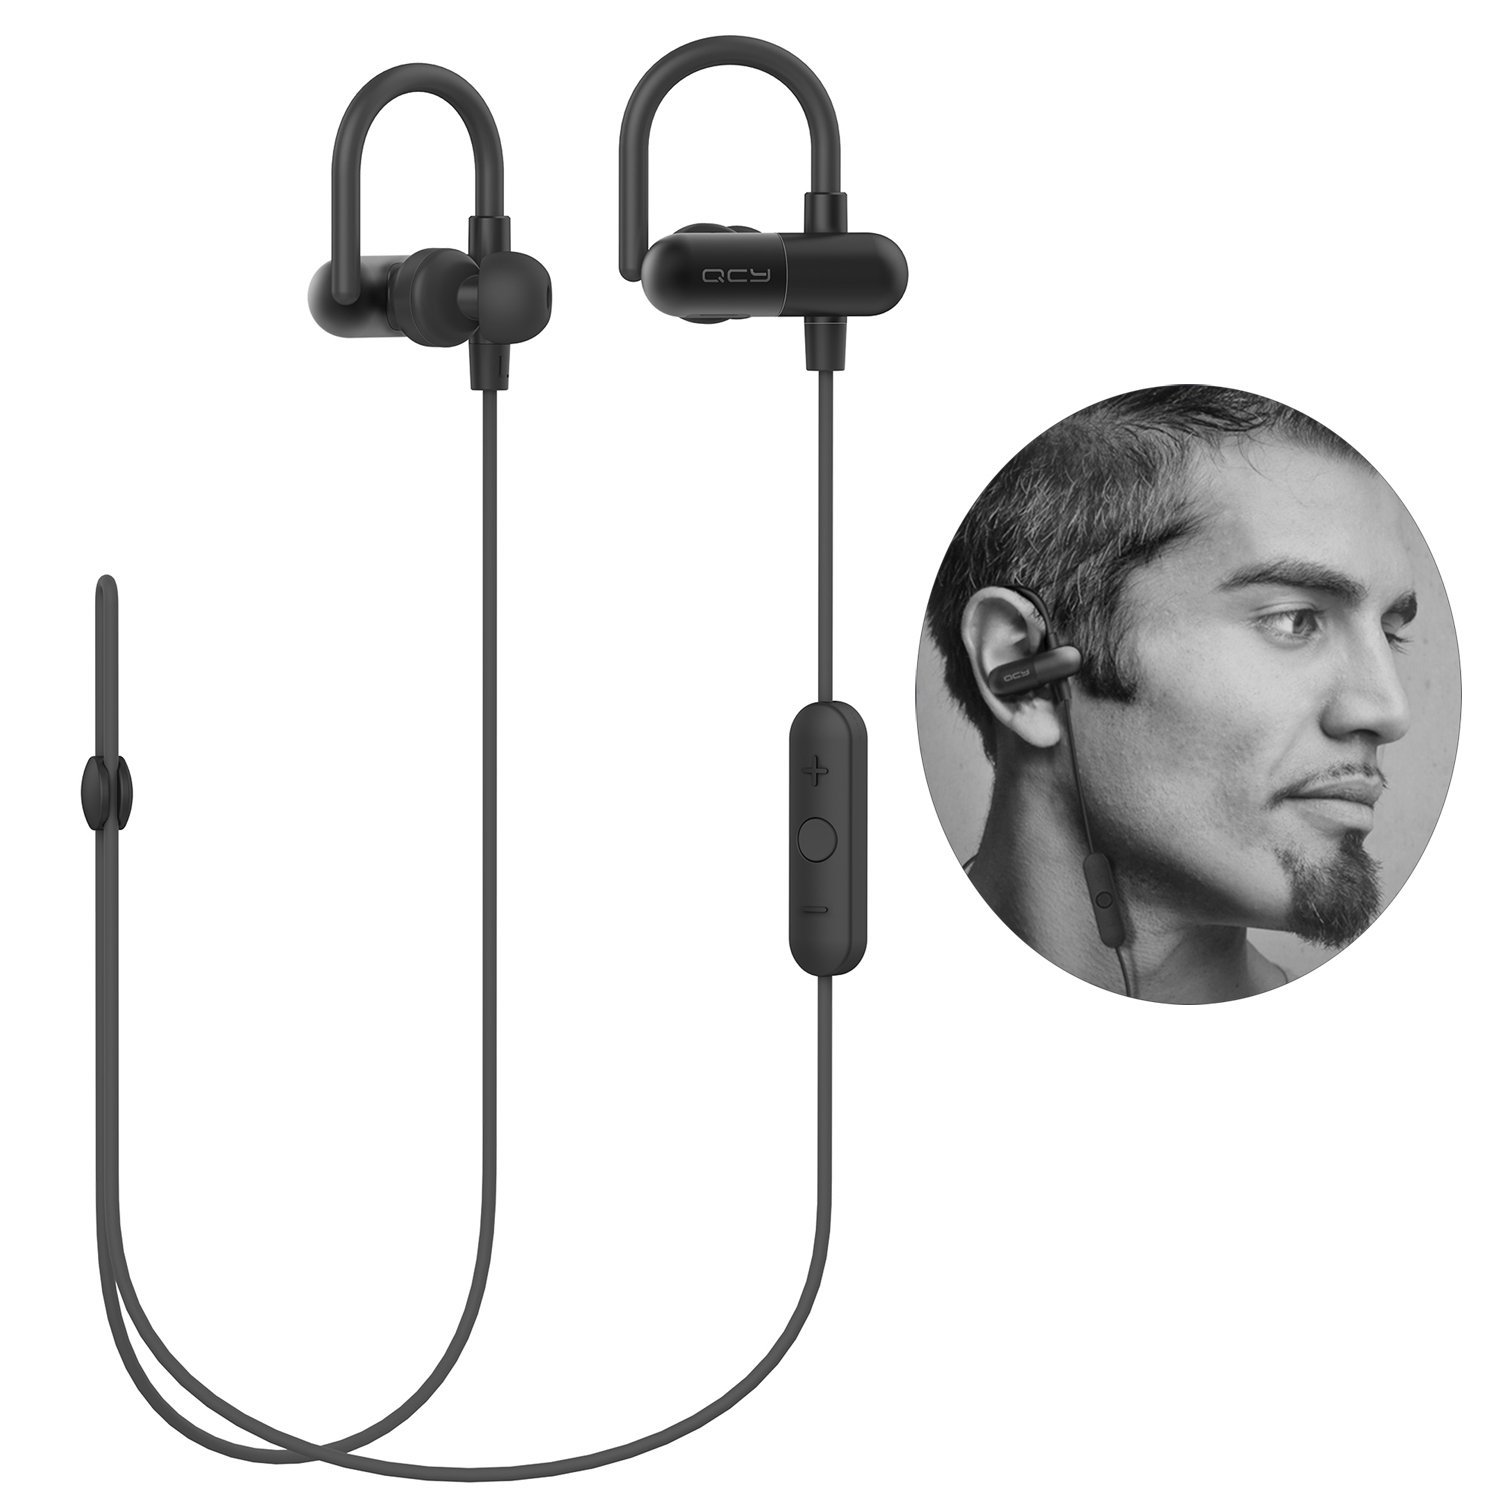 [Upgrade QY8] QY11 Bluetooth Headphones with Memory Metal Ear Hooks Wireless Bluetooth V4.1 Stereo Running Headset Sweatproof QCY APT-X In-Ear Sports Earbuds Earphones Built-in Microphone-Black